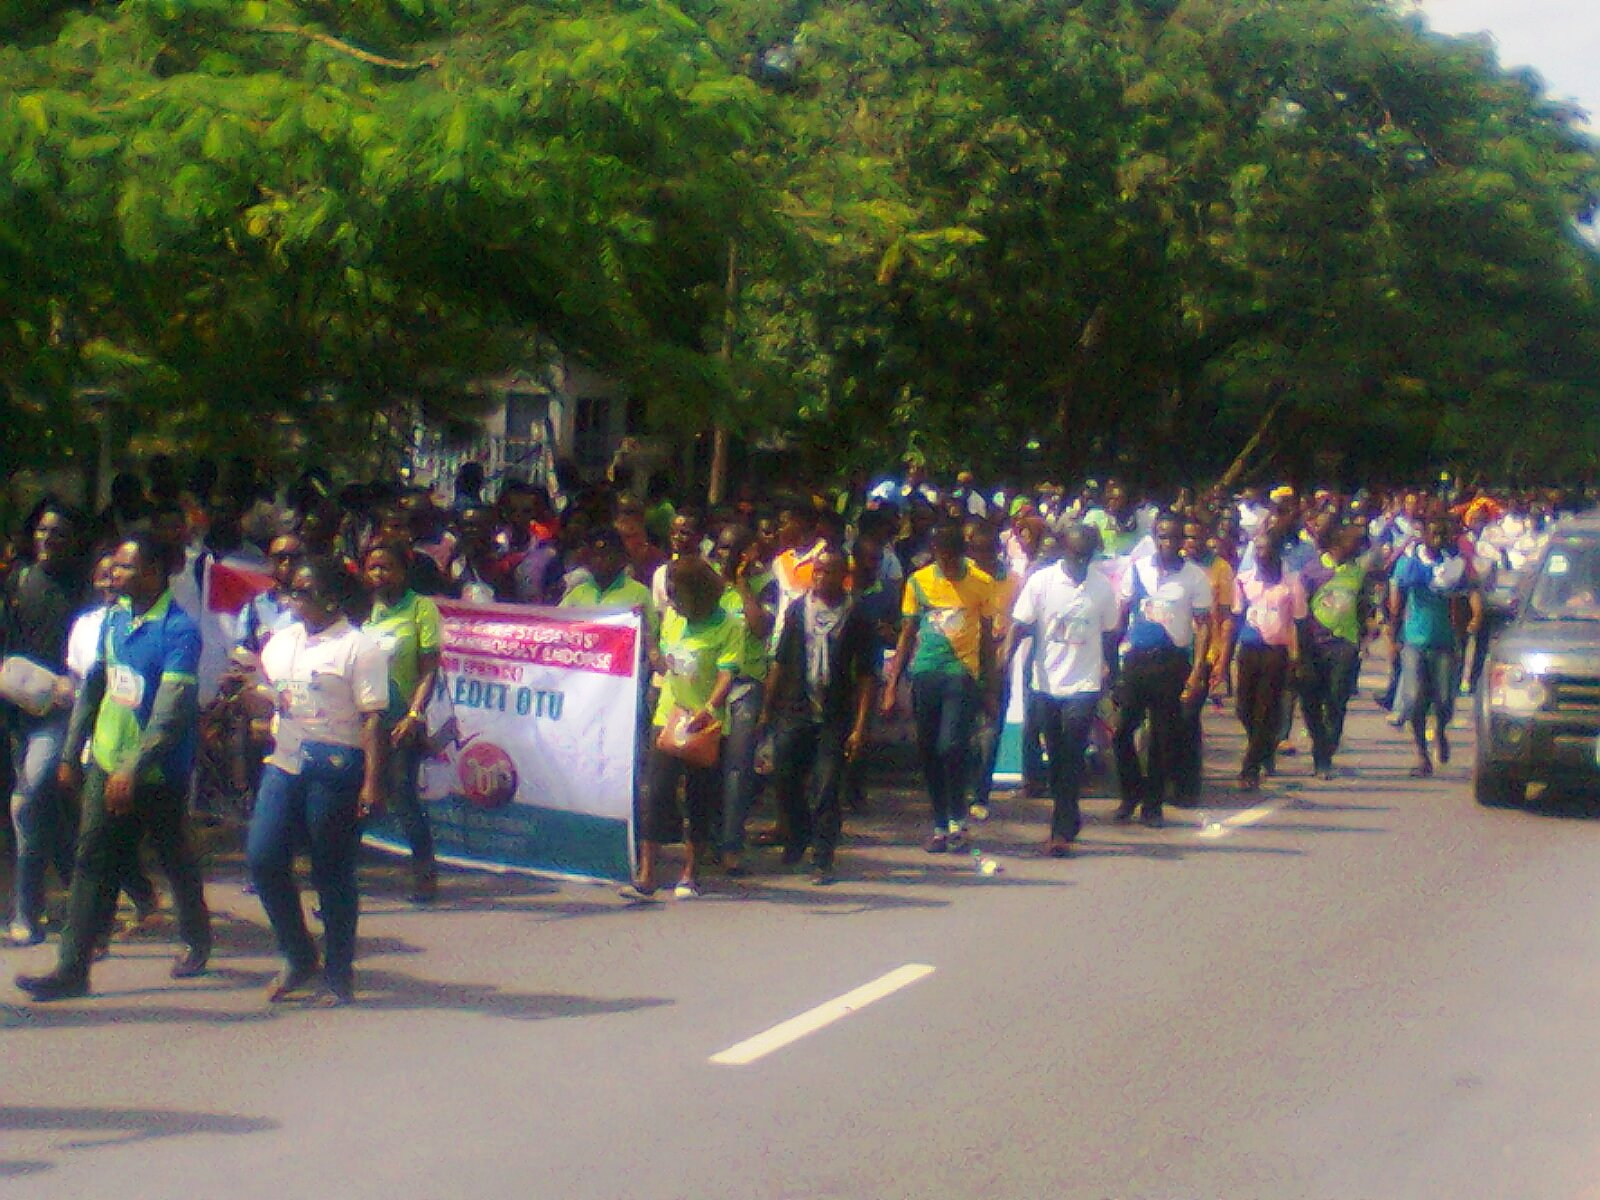 Southern Cross River Students protesting in support of Senator Otu